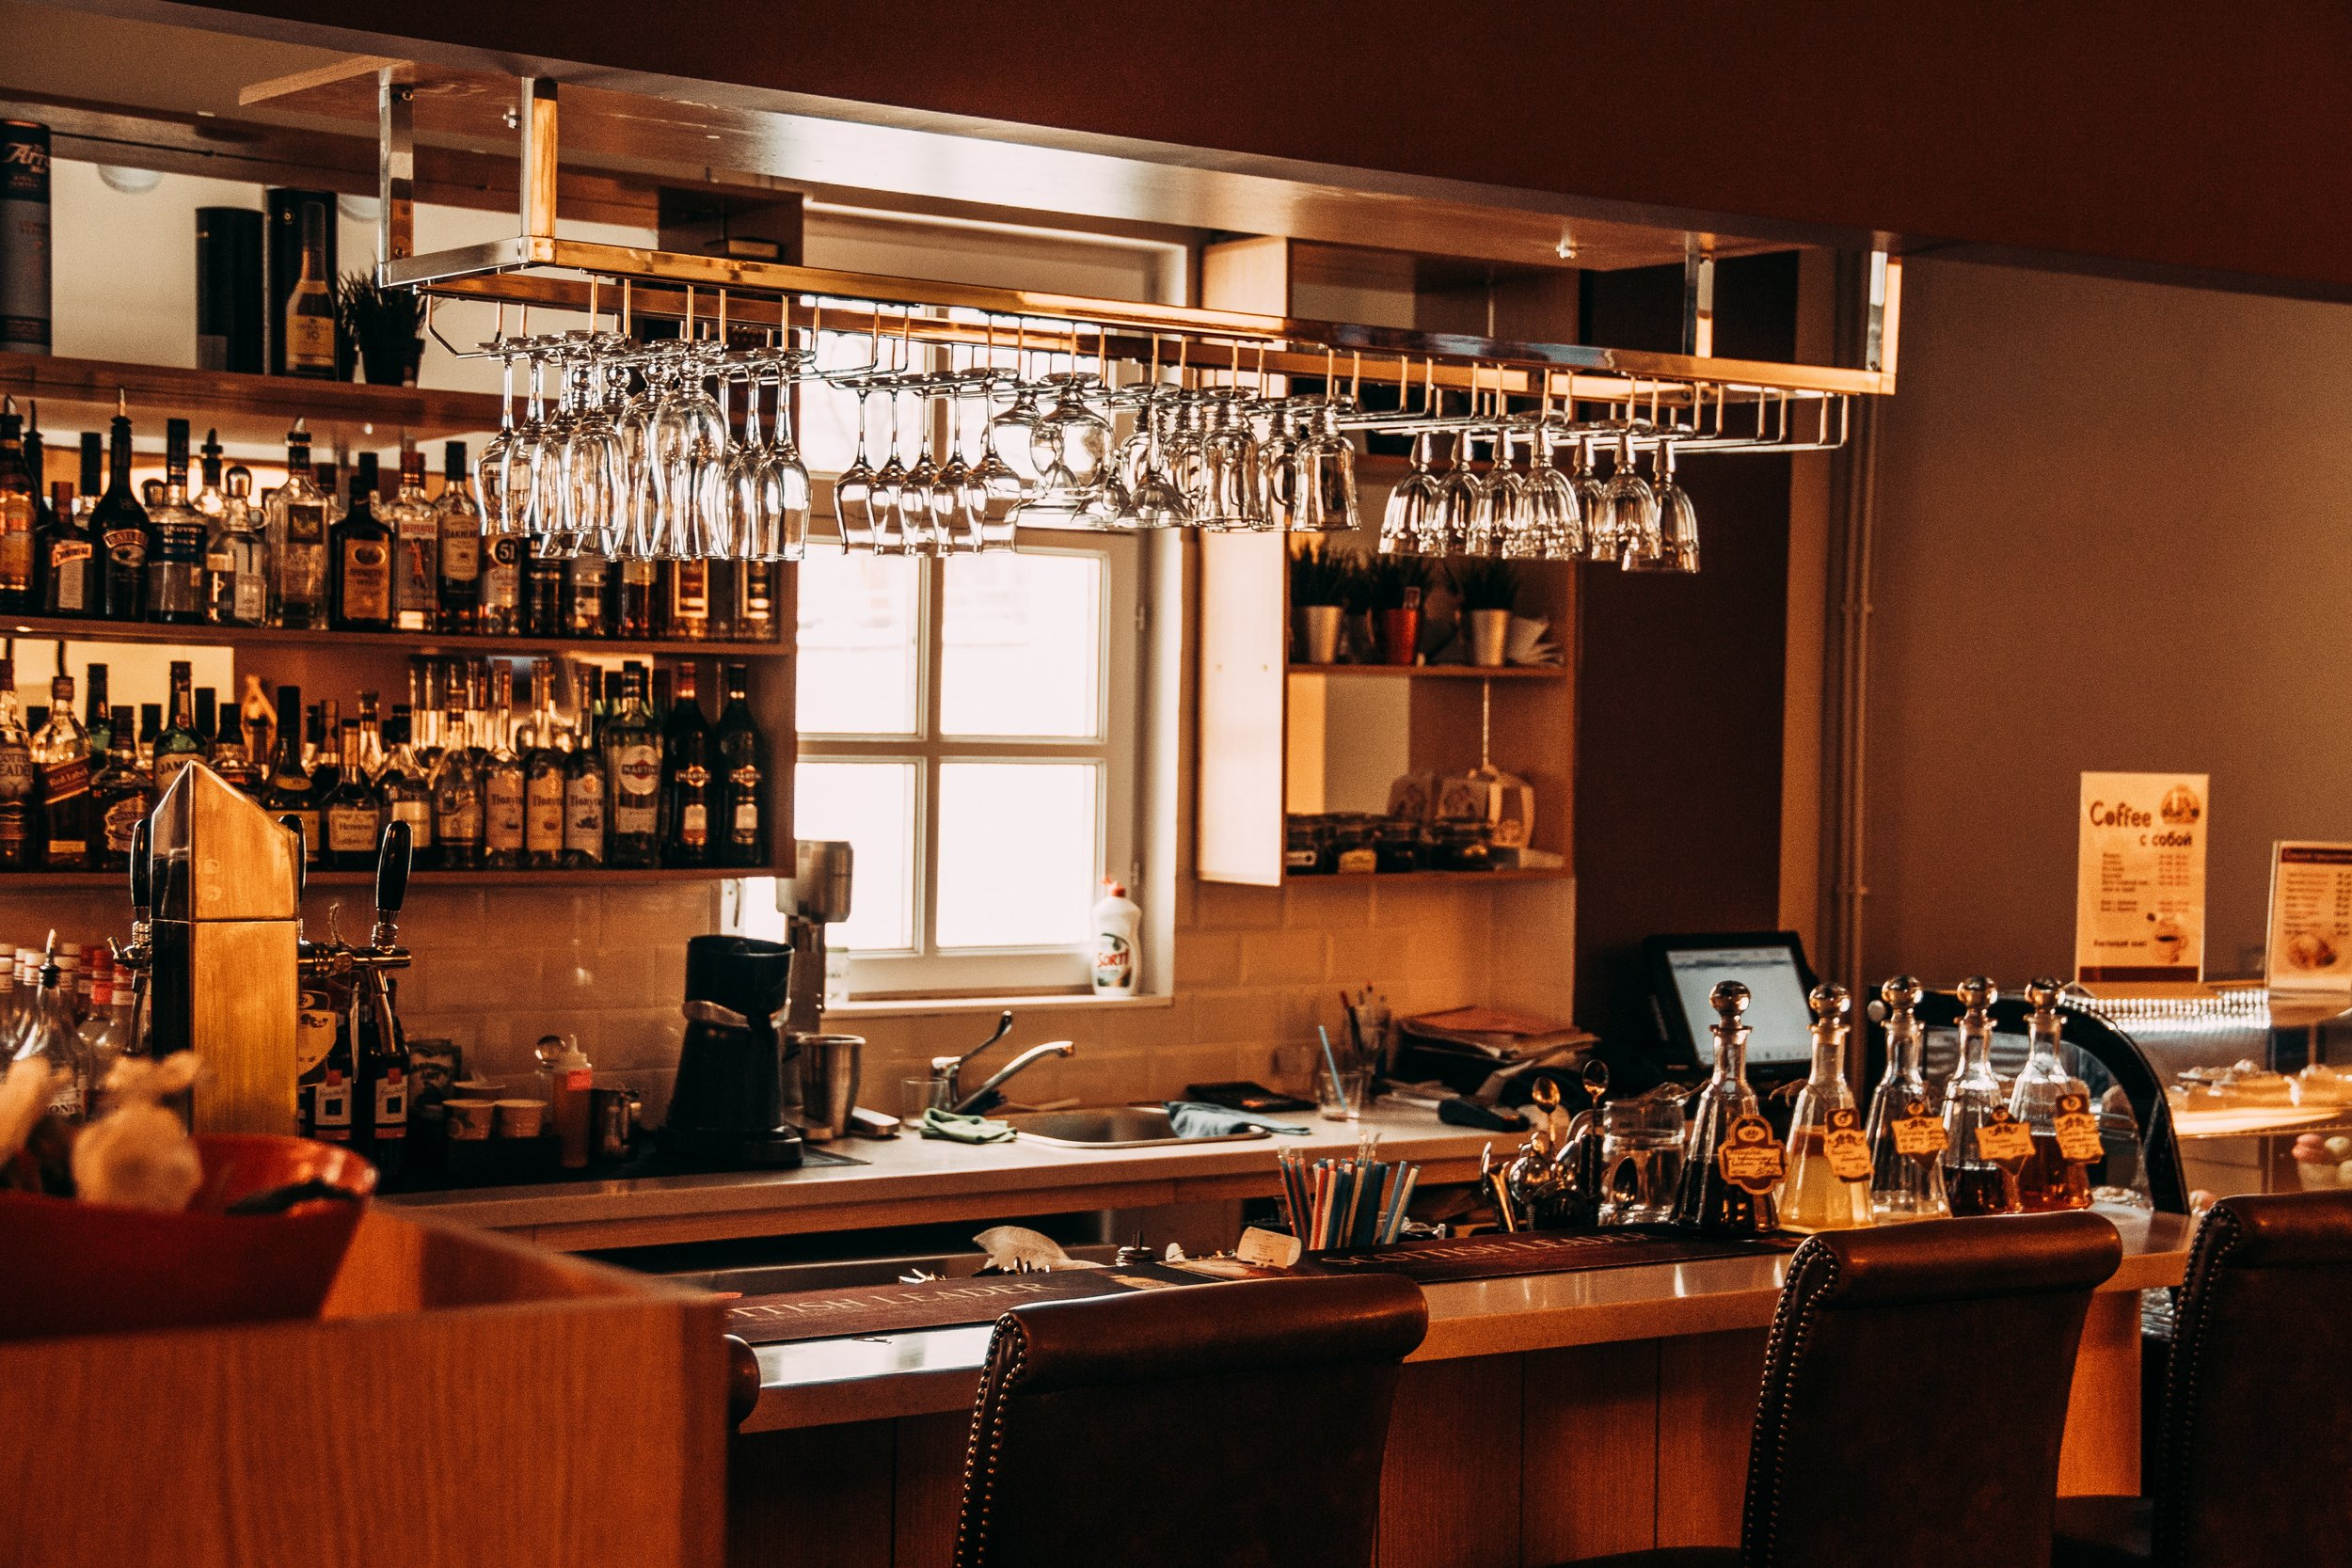 alcohol-architecture-bar-331107.jpg